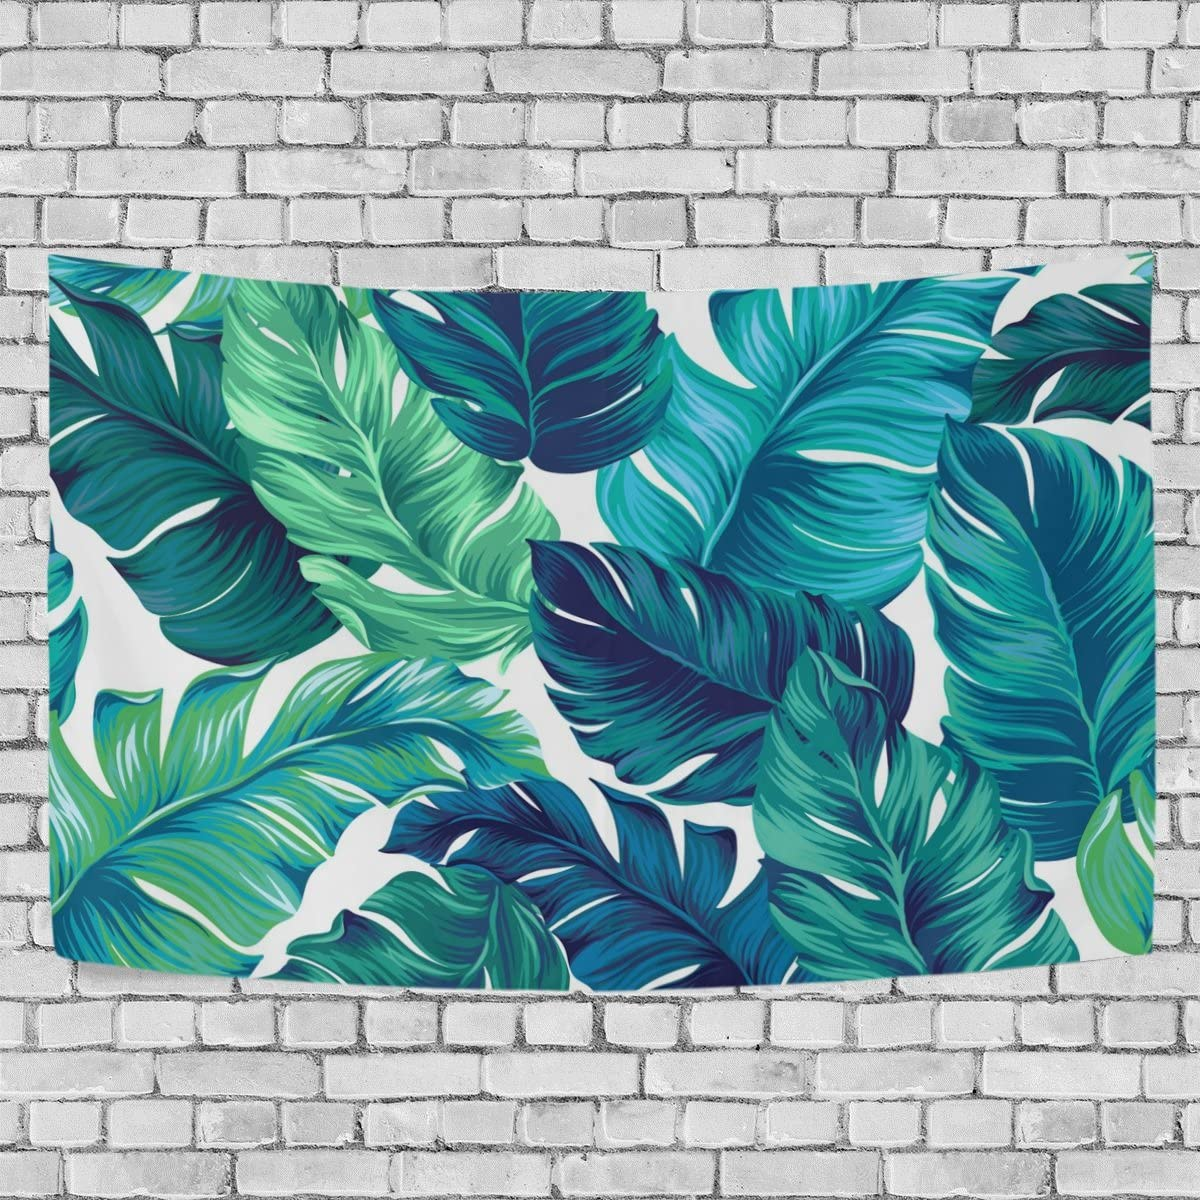 ALAZA Watercolor Turquoise Green Tropical Leaves Tapestry Dorm Throw Bedroom Living Room Decorative Window Doorway Wall Hanging Curtain 80×60 inch